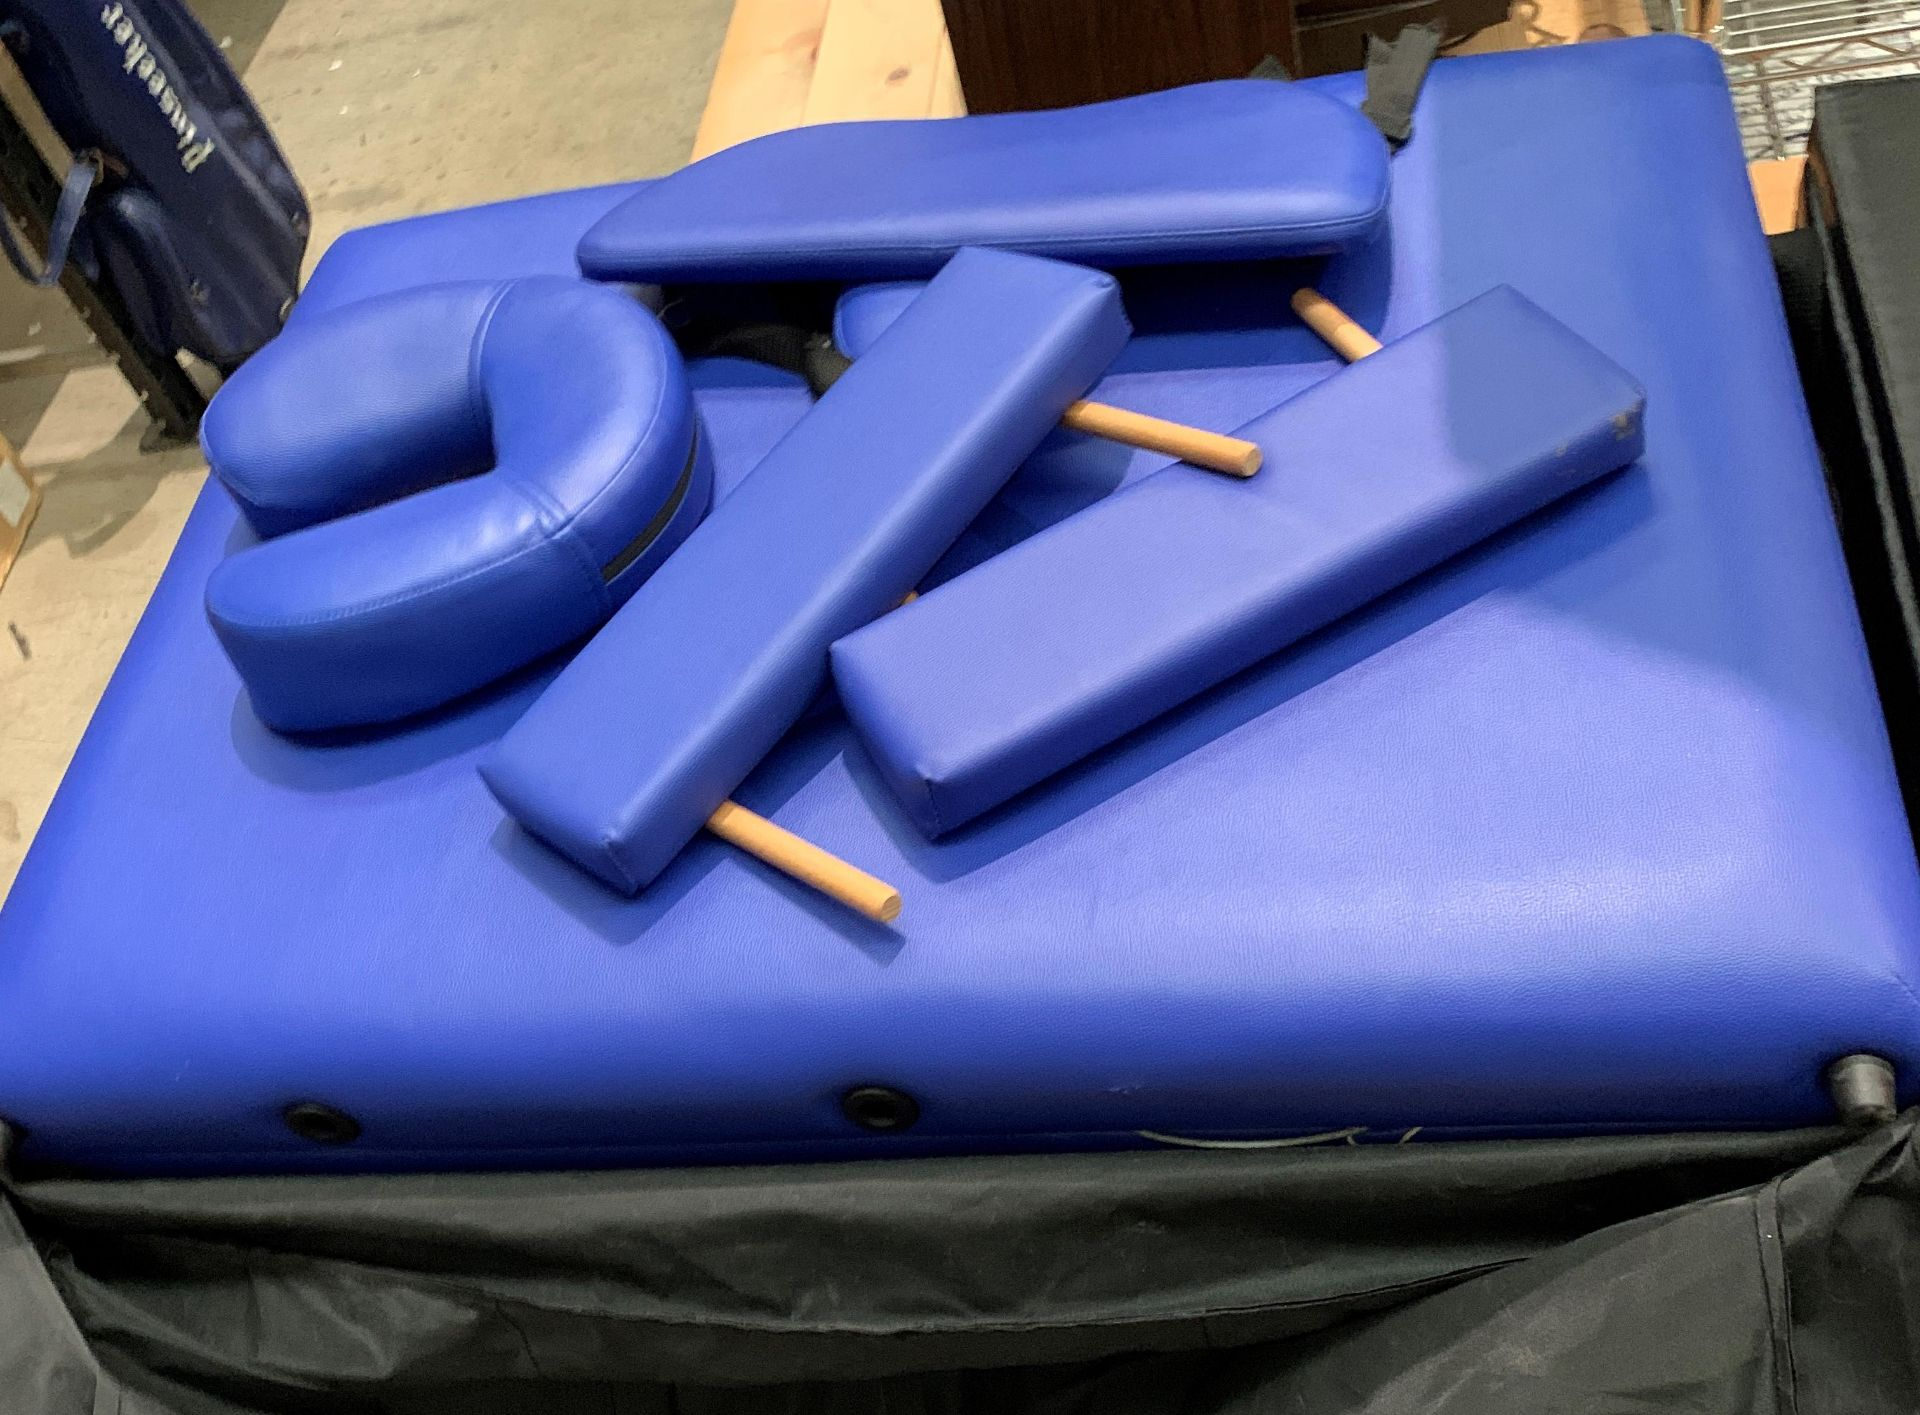 A Healthline Massage Products folding massage bench upholstered in blue PVC complete with carry bag, - Image 8 of 8